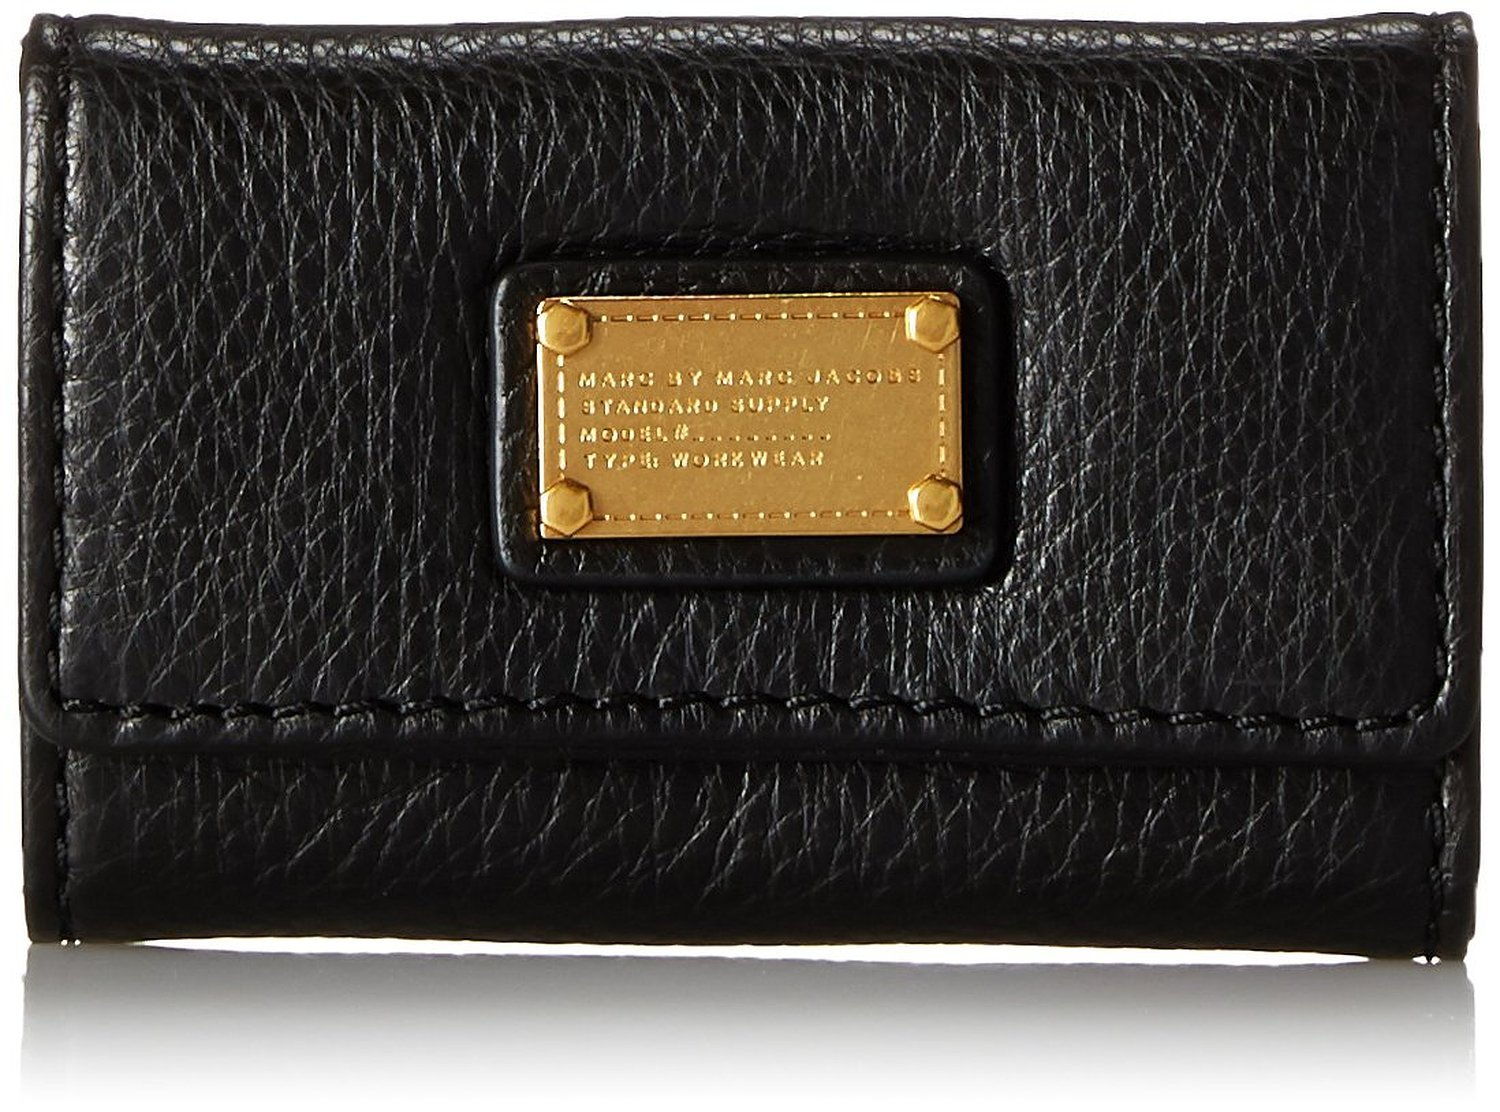 Marc by Marc Jacobs Classic Q Key Case Coin Purse, Black, One Size by Marc by Marc Jacobs